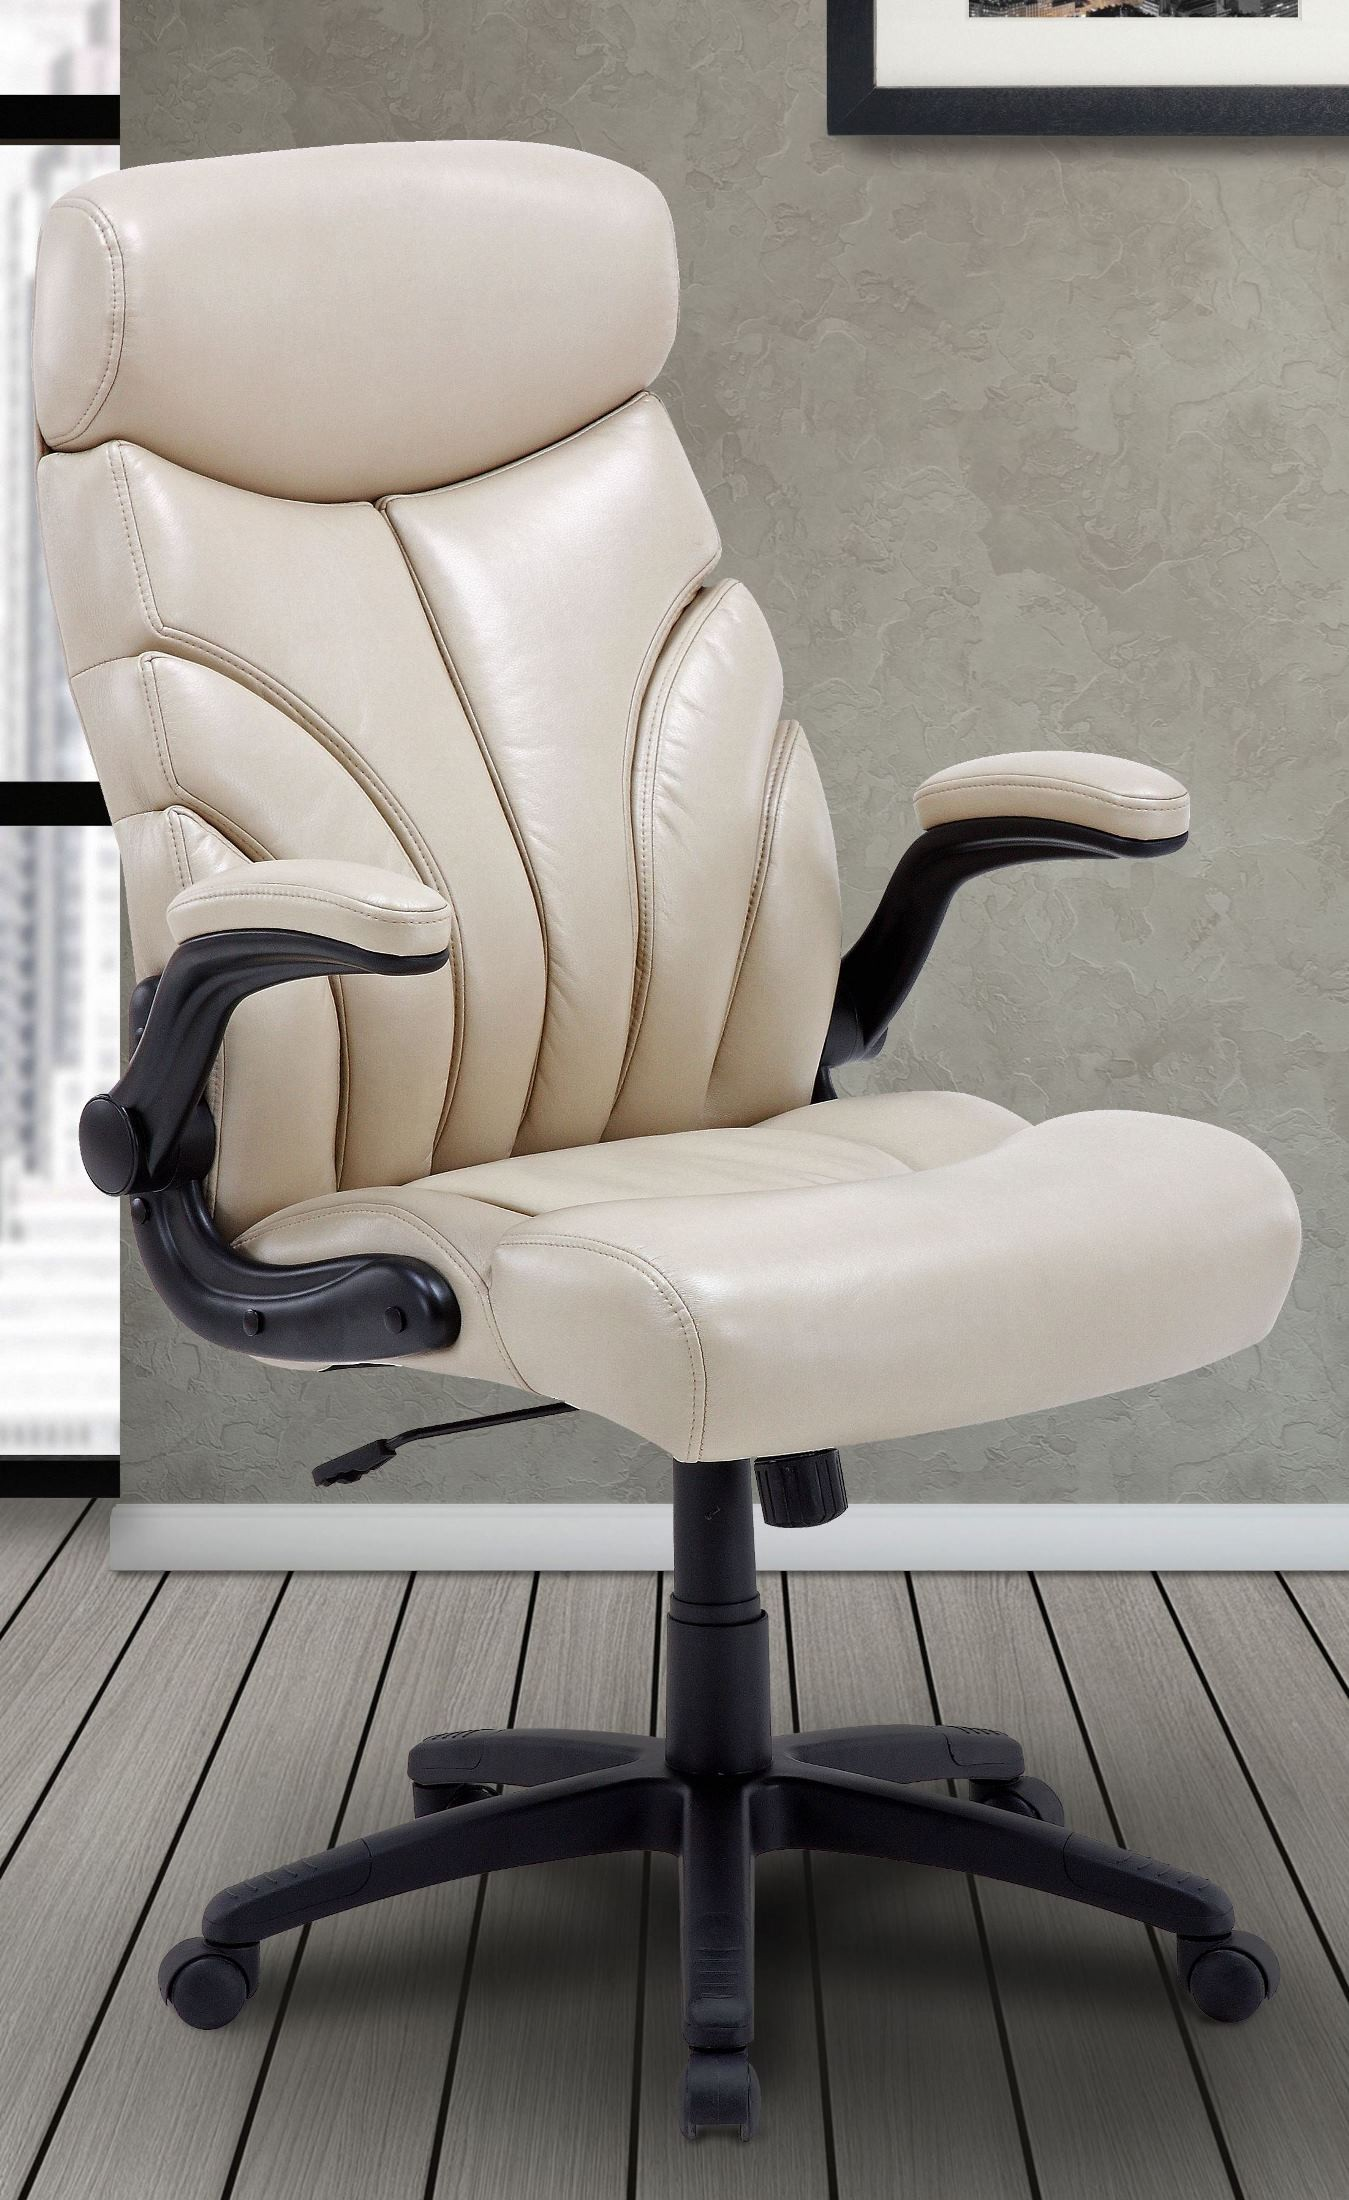 Signature Creme Lift Arm Desk Chair From Parker Living